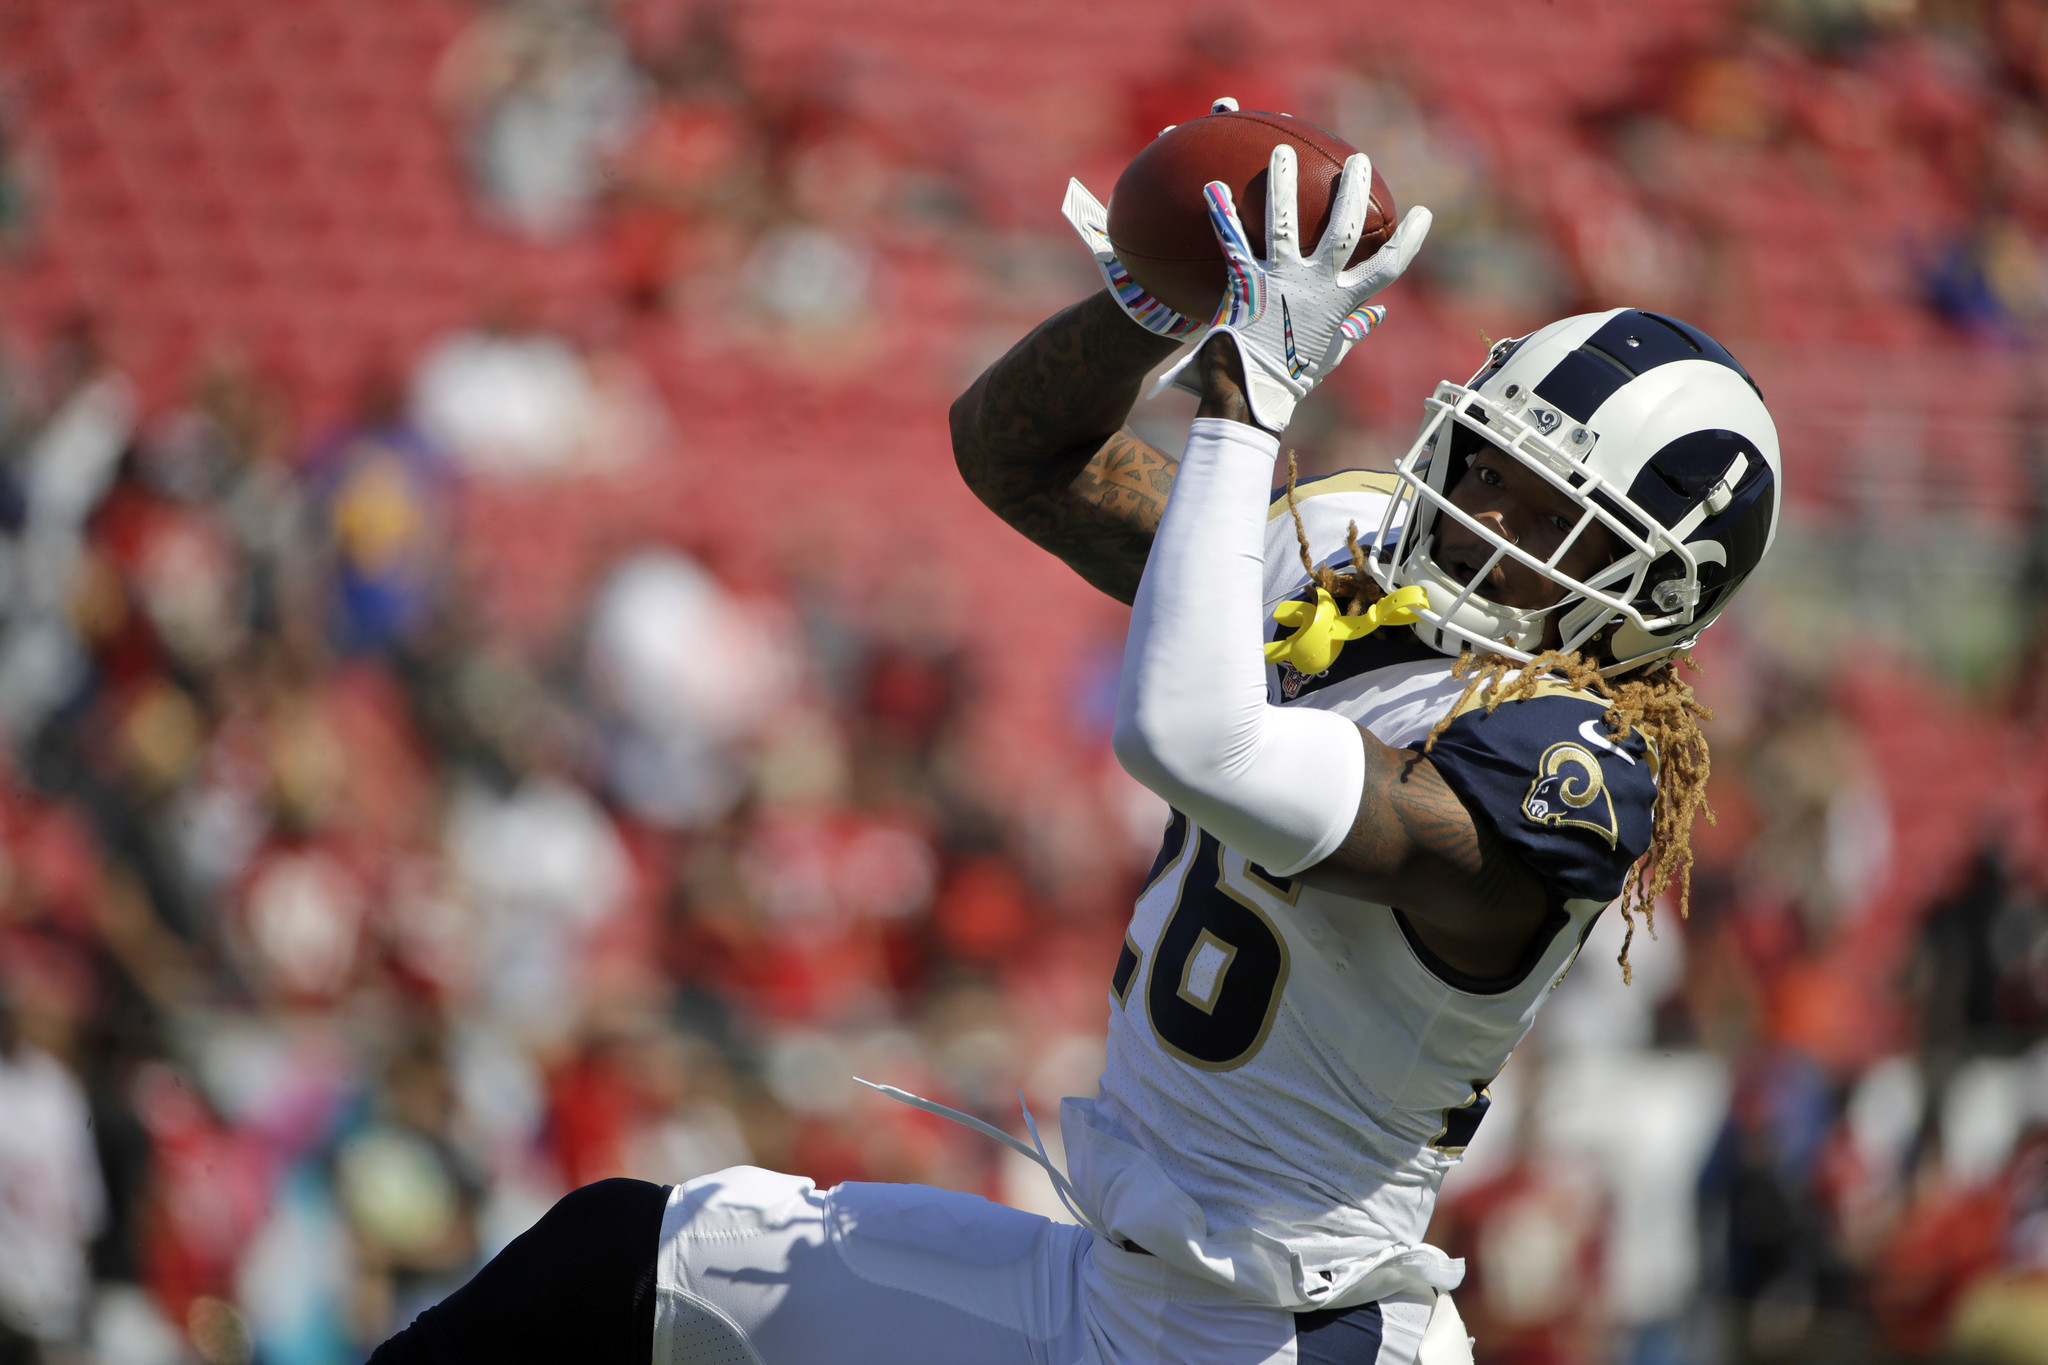 Jets sign former Rams safety Marqui Christian and cut cornerback Darryl Roberts